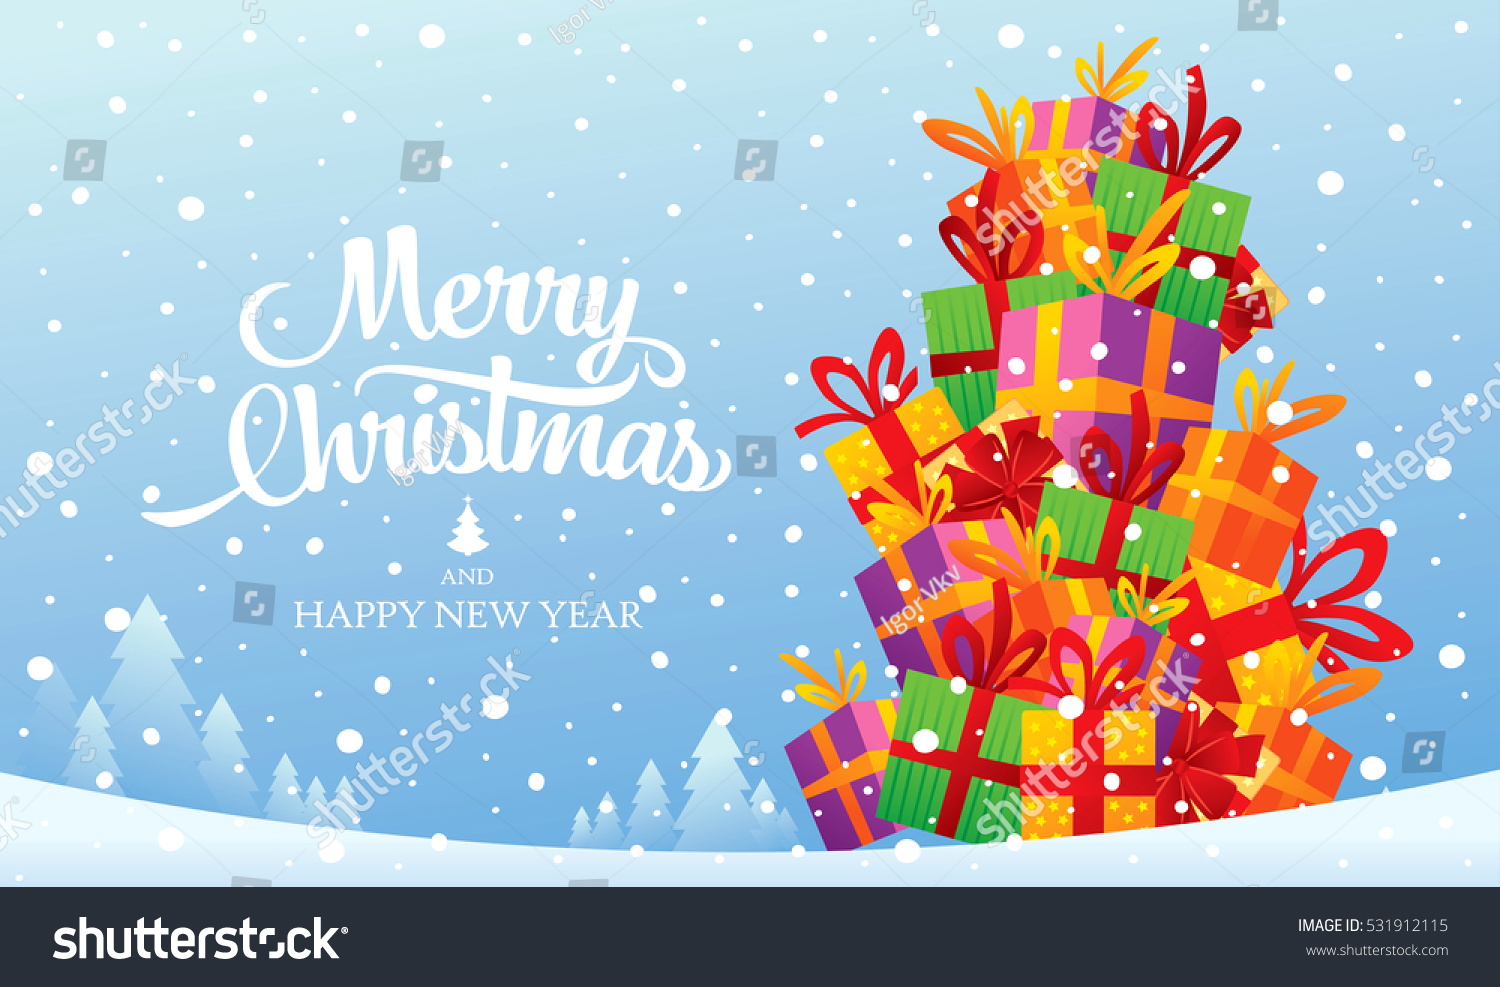 Christmas greeting card merry christmas happy stock vector royalty christmas greeting card merry christmas and happy new year m4hsunfo